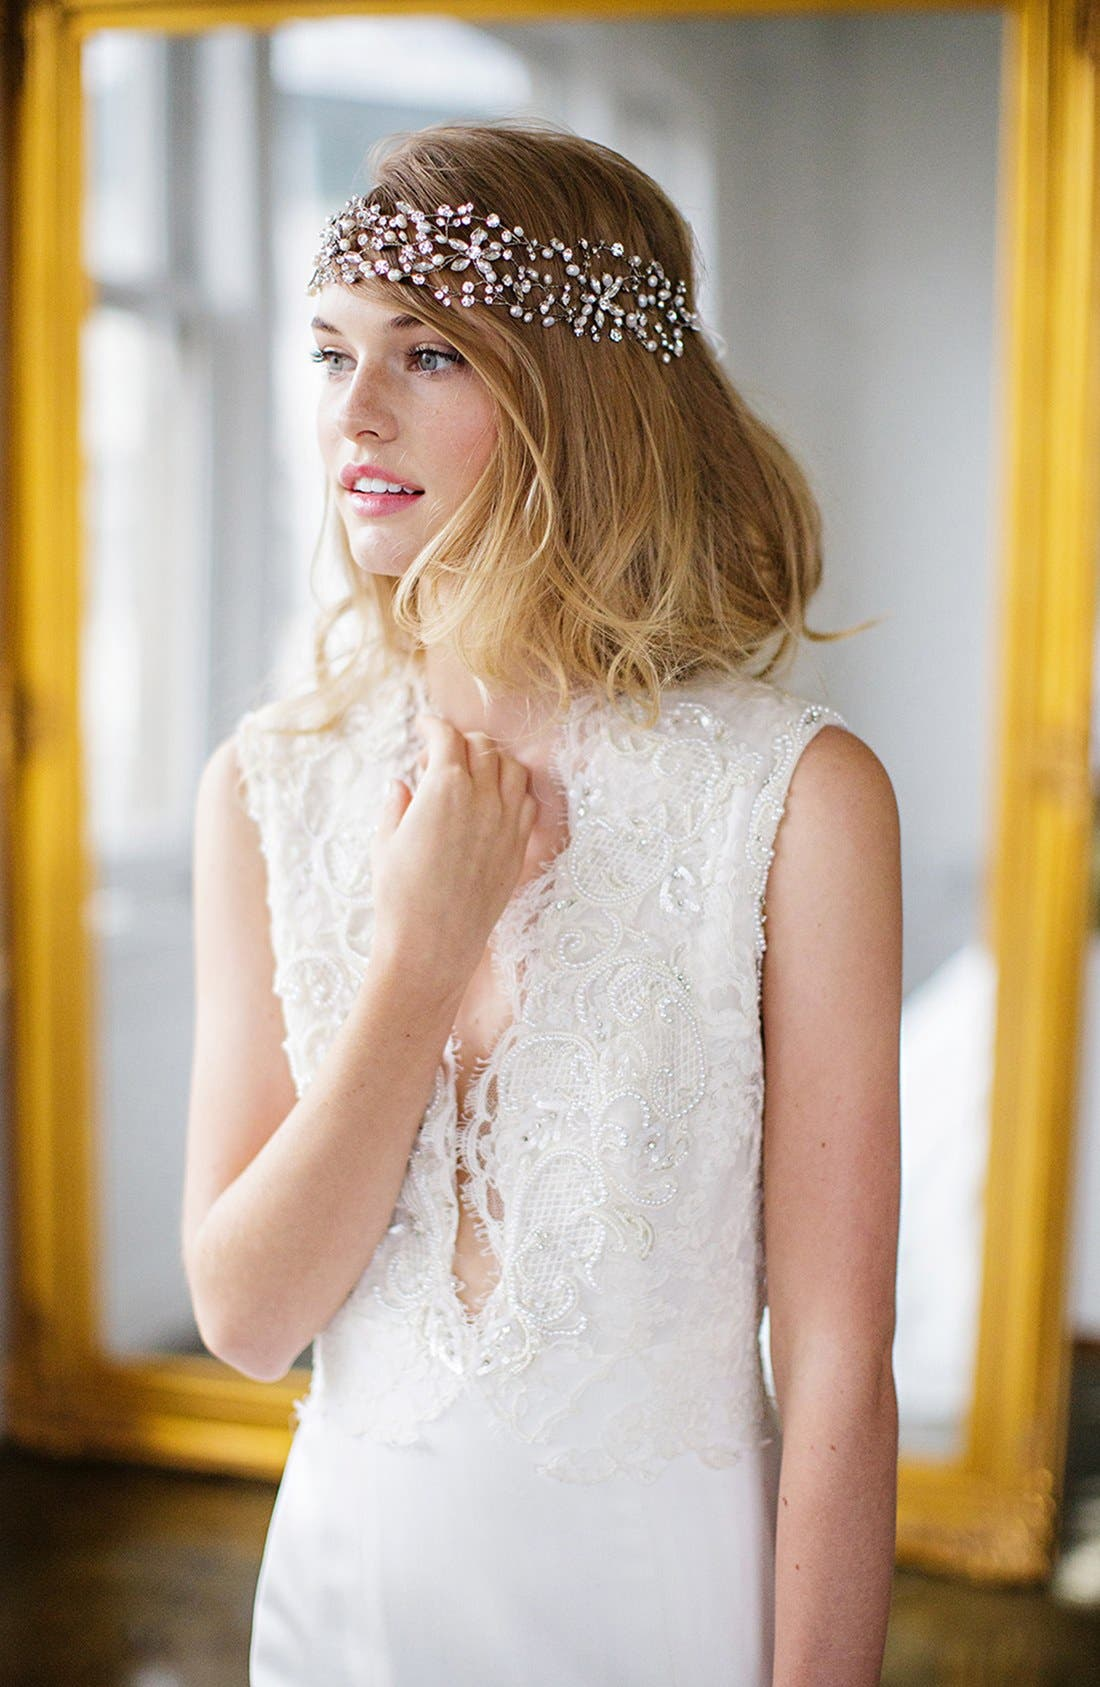 Alternate Image 1 Selected - Brides & Hairpins 'Thalia' Pearl & Jeweled Head Band